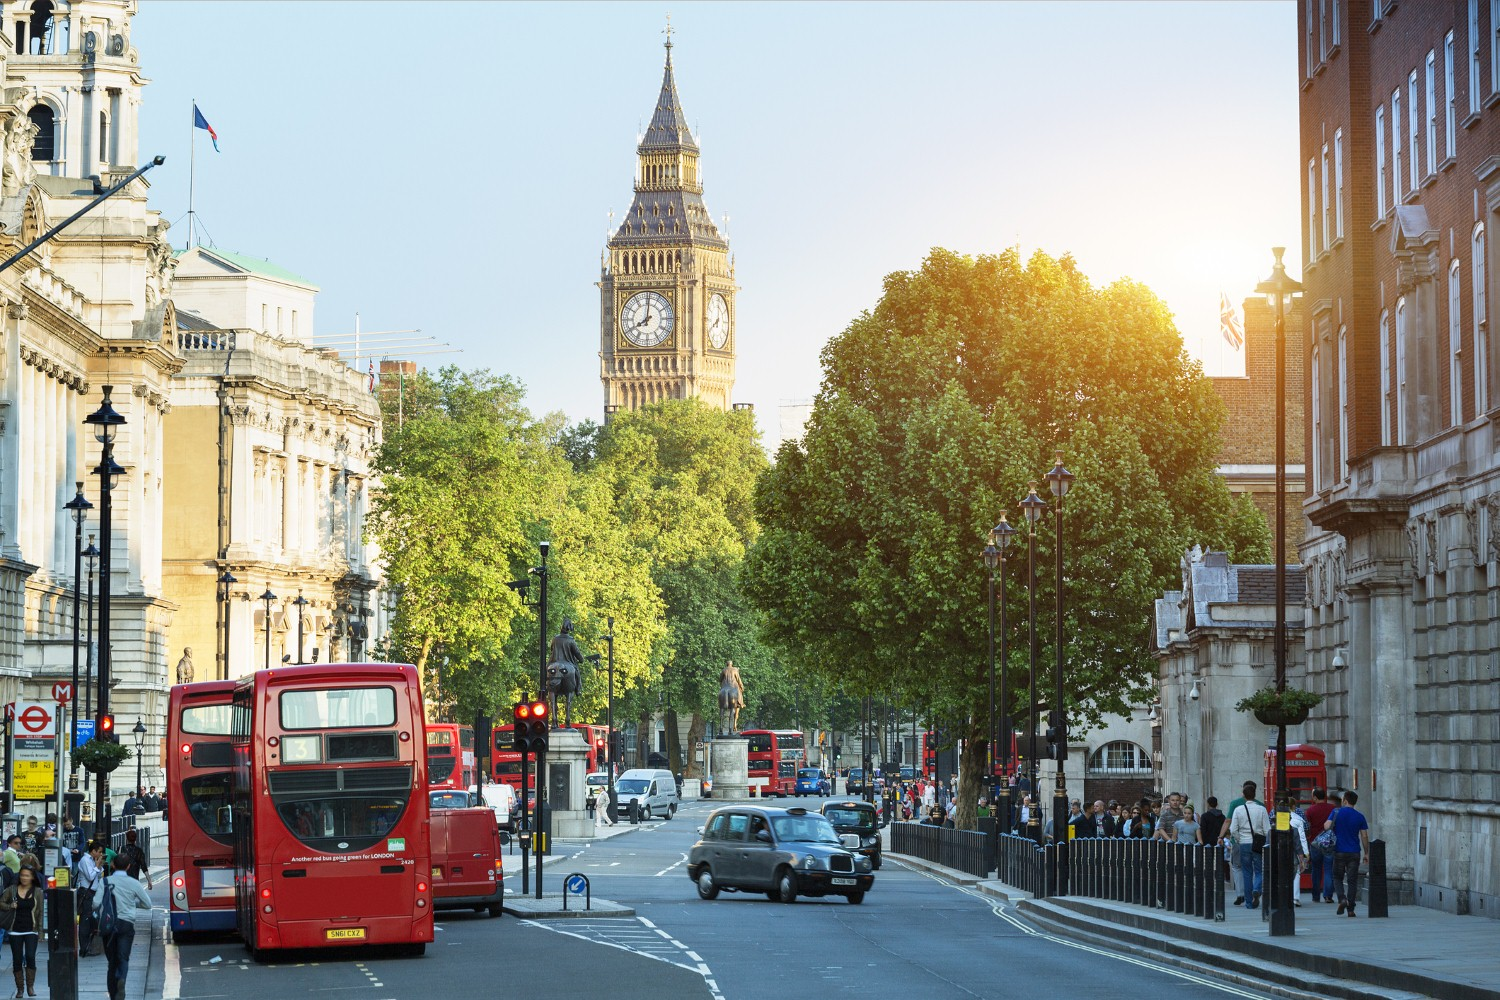 London likely to reclaim its property market dominance in 2021 [Photo: iStock/johnkellerman]